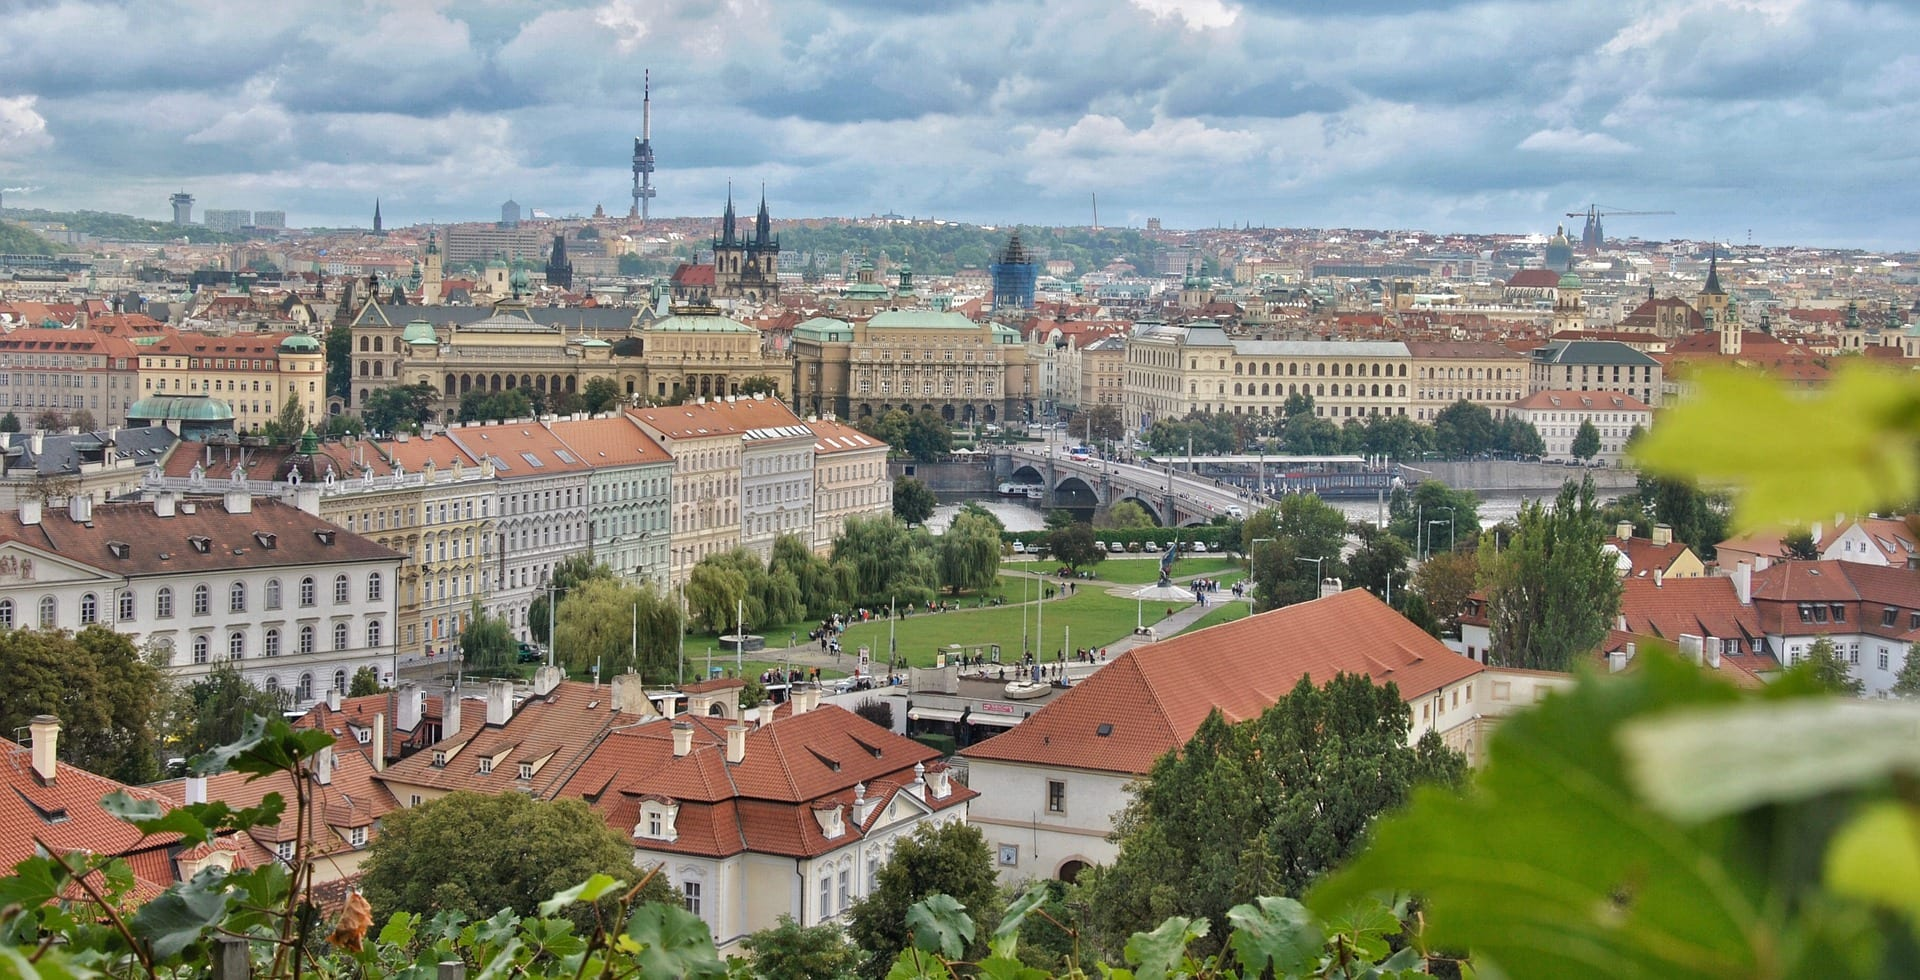 investing in residential real estate in the Czech Republic